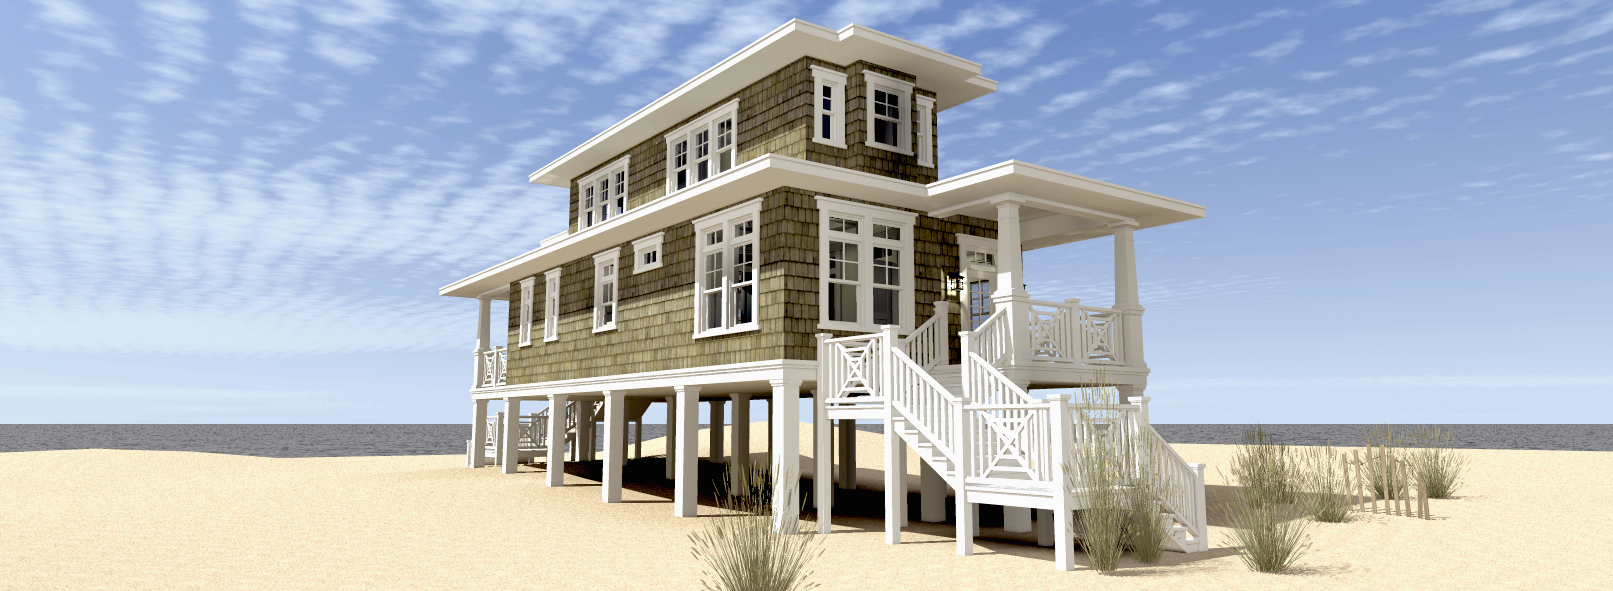 Beach house plan with walkout sundeck 44124td House plans coastal